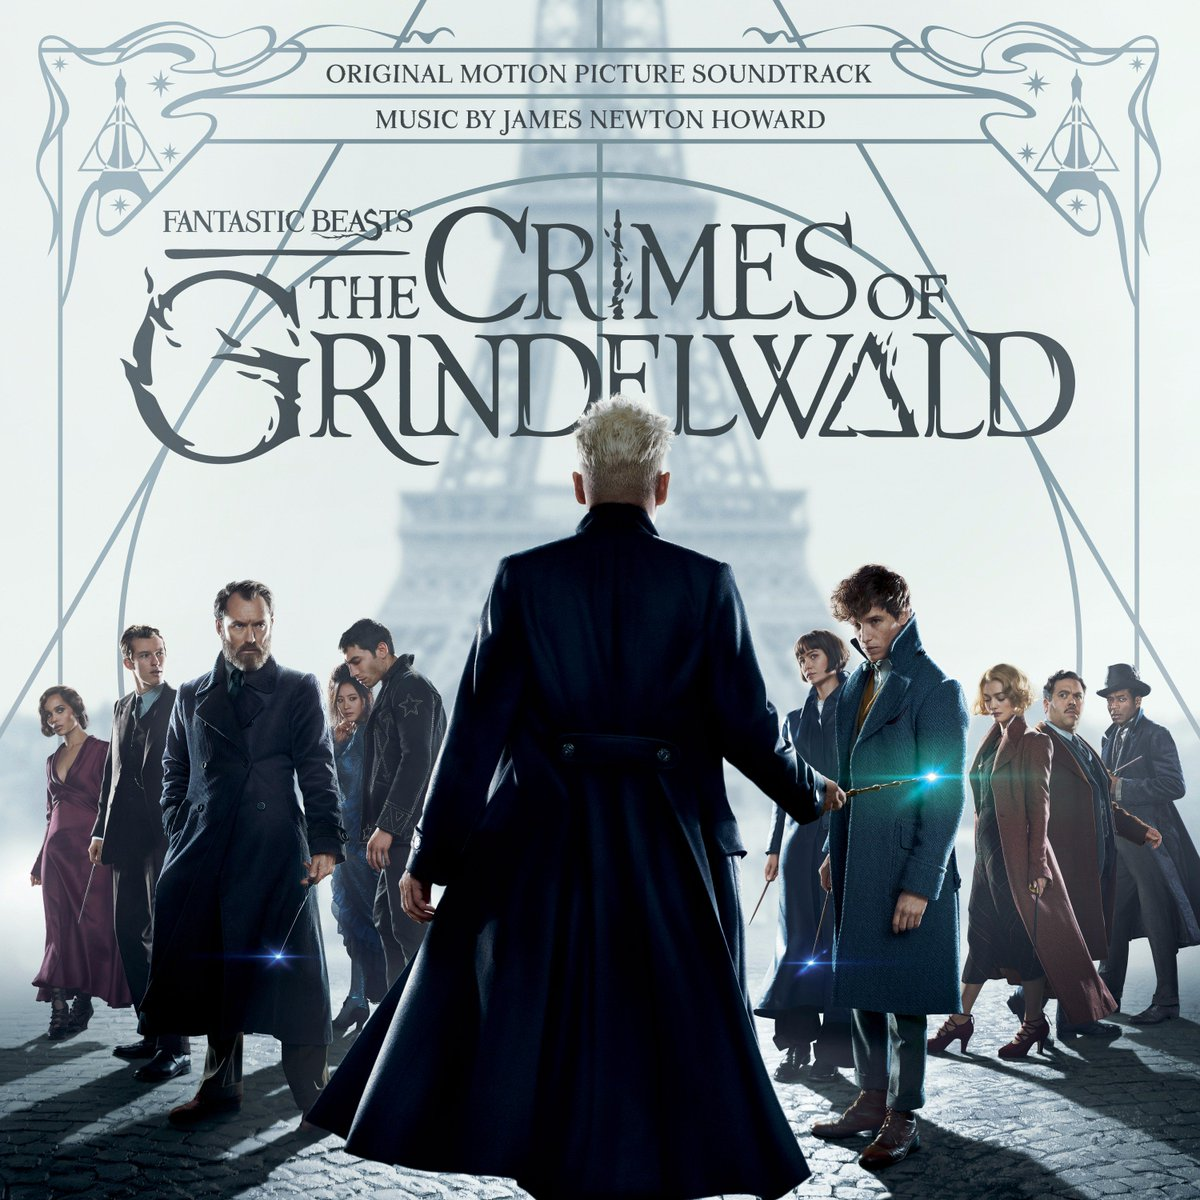 !! #NewMusicFriday! Two tracks from the #FantasticBeasts : The Crimes of Grindelwald soundtrack by #JamesNewtonHoward are avail. now!  Check em out and let us know which is your favorite.  https:// lnk.to/fantasticbeast s2FA &nbsp; … <br>http://pic.twitter.com/9Eyv2uV4Ru